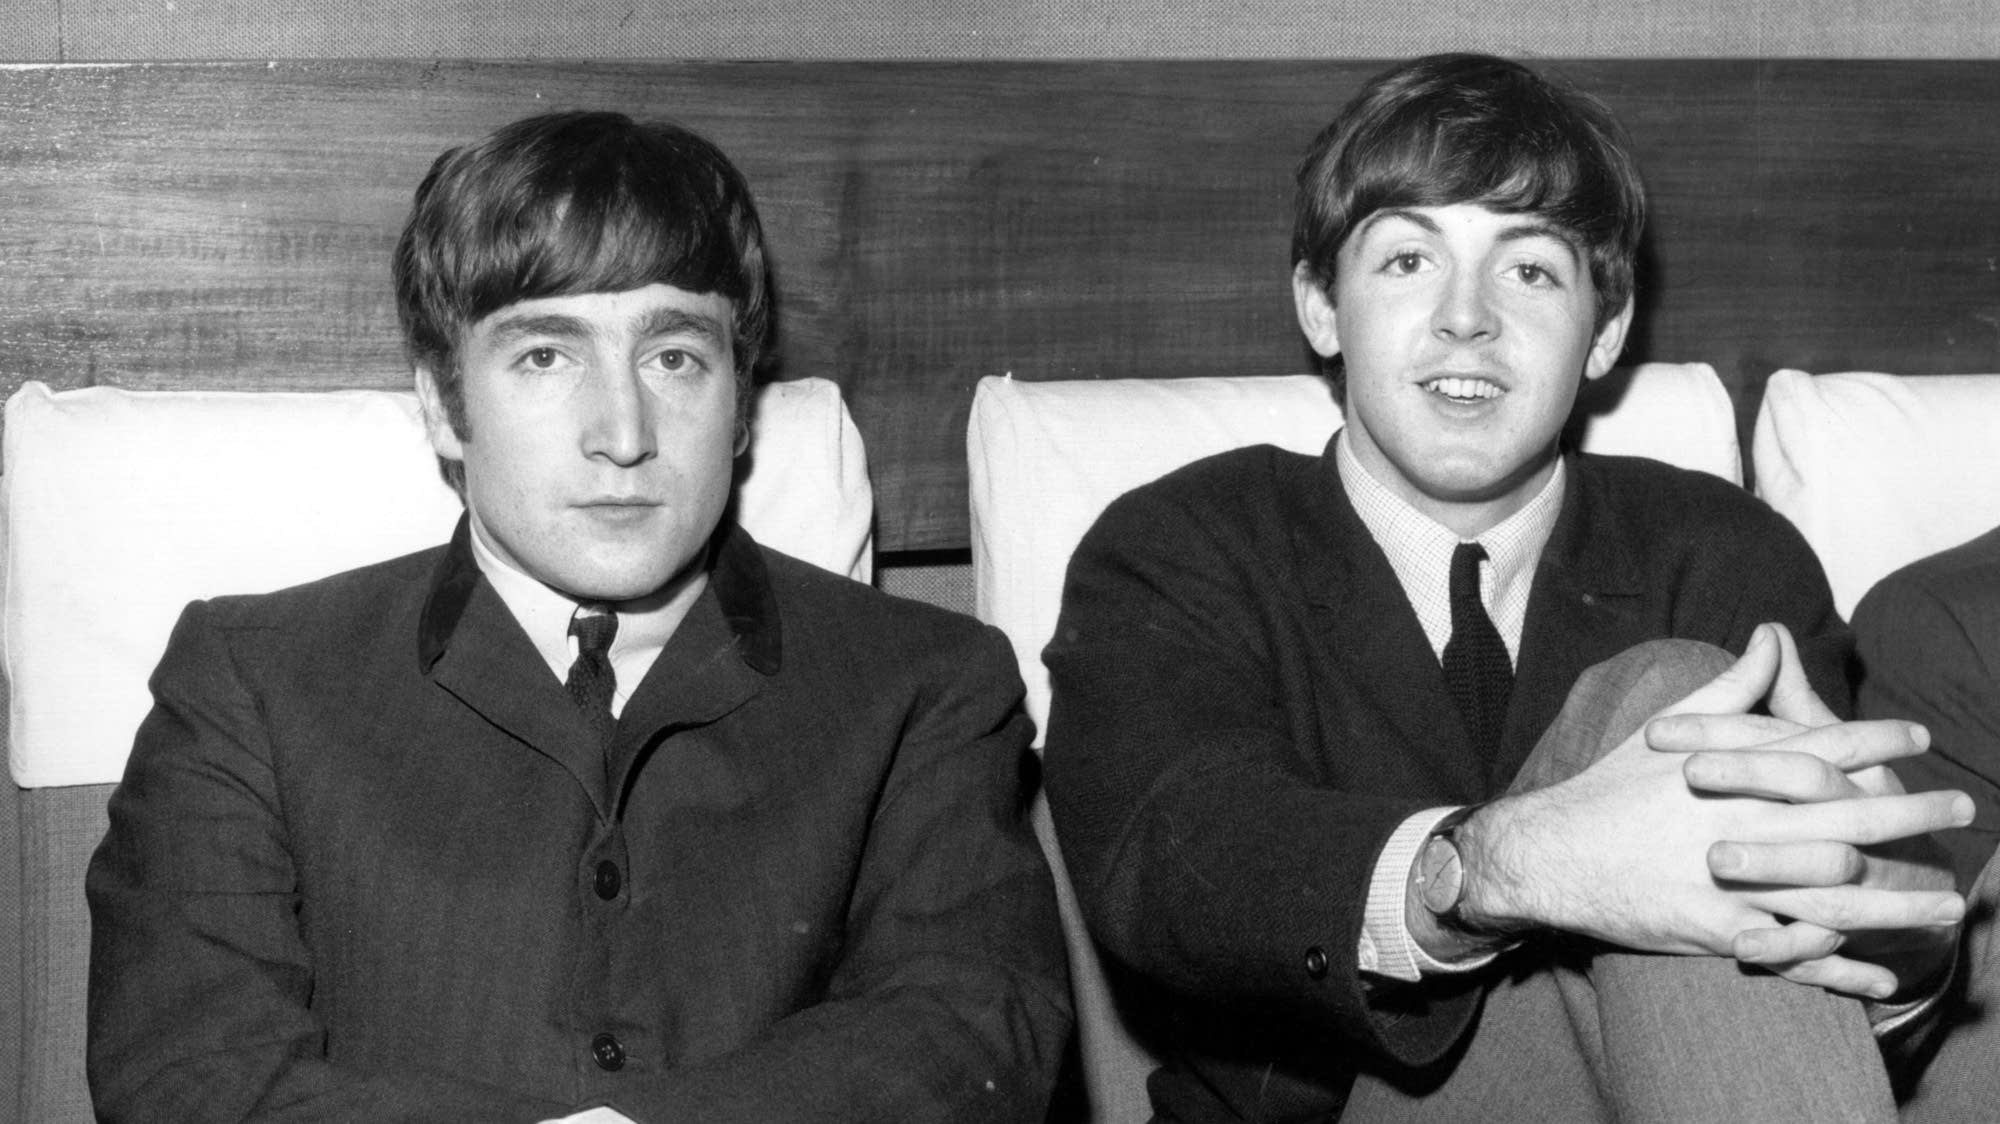 60 Years Ago John Lennon Met Paul Mccartney The Rest Is History Mpr News